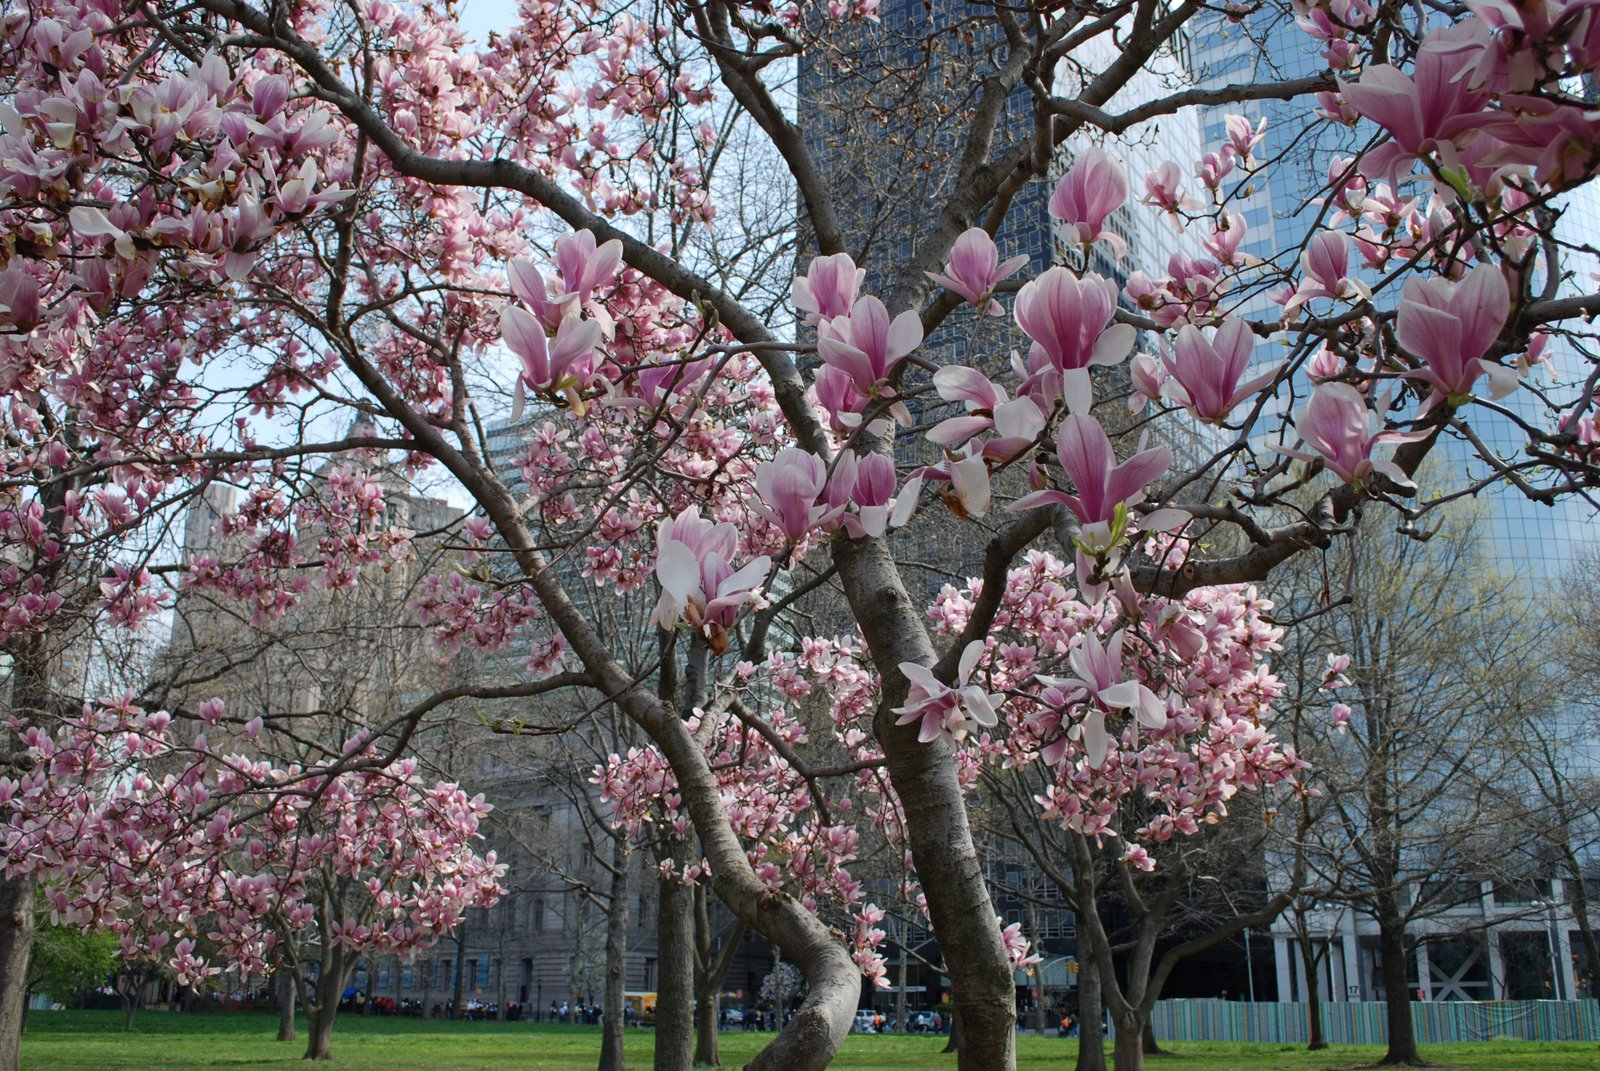 magnolia blossoms, battery park, manhattan